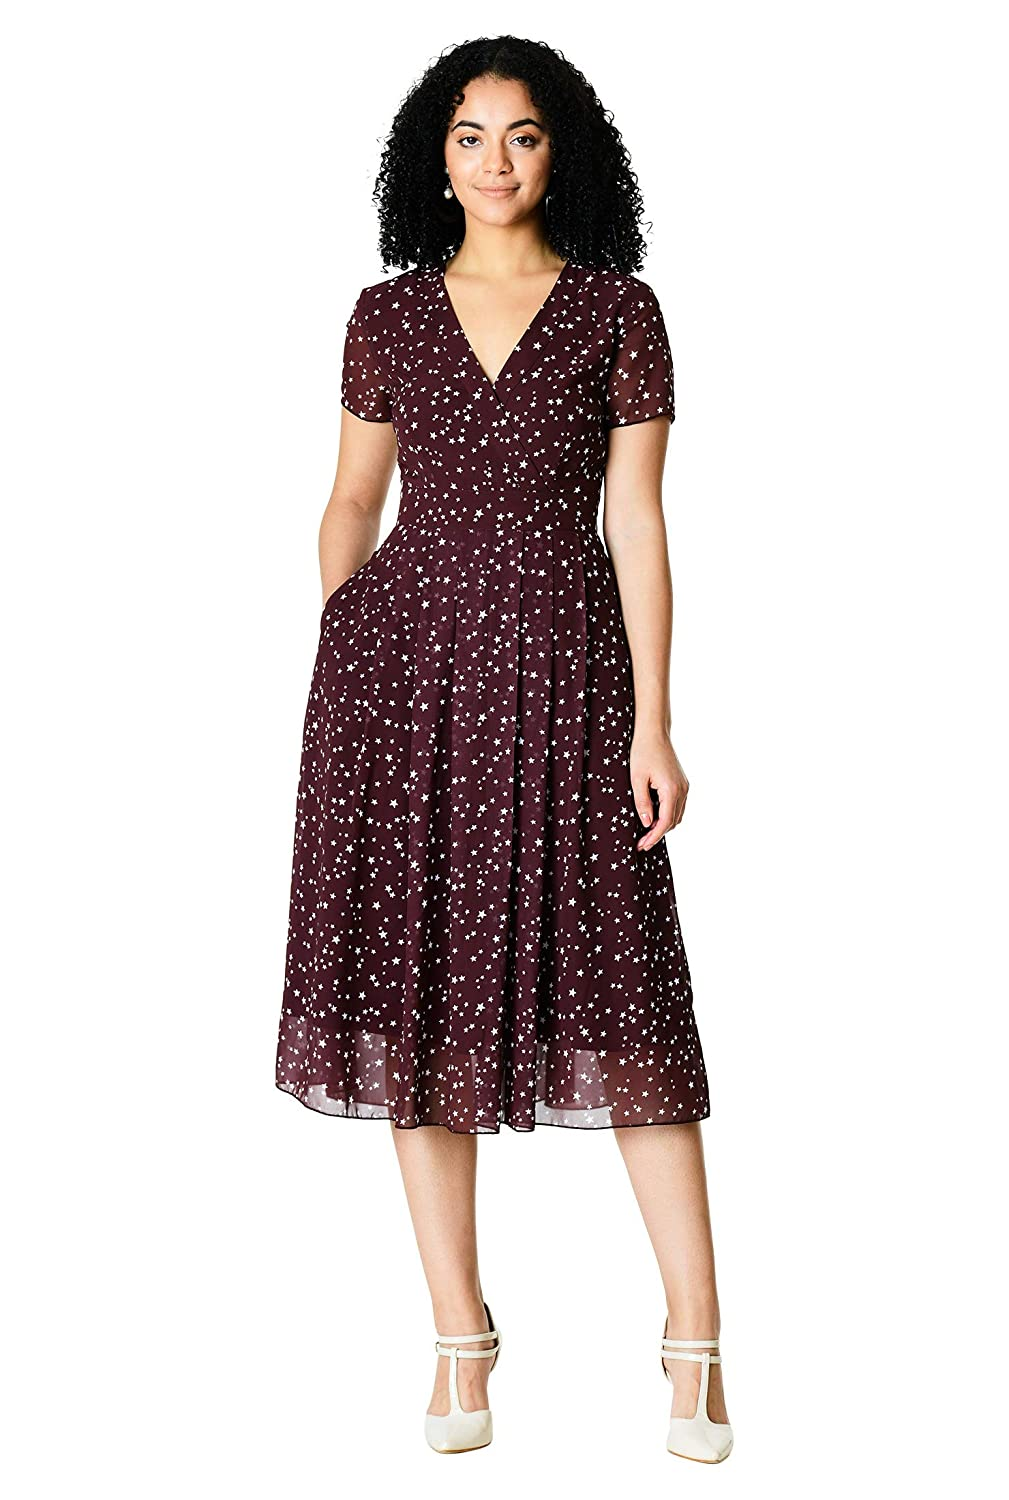 1940s Dresses | 40s Dress, Swing Dress eShakti Womens Surplice Star Print Georgette Dress $74.95 AT vintagedancer.com